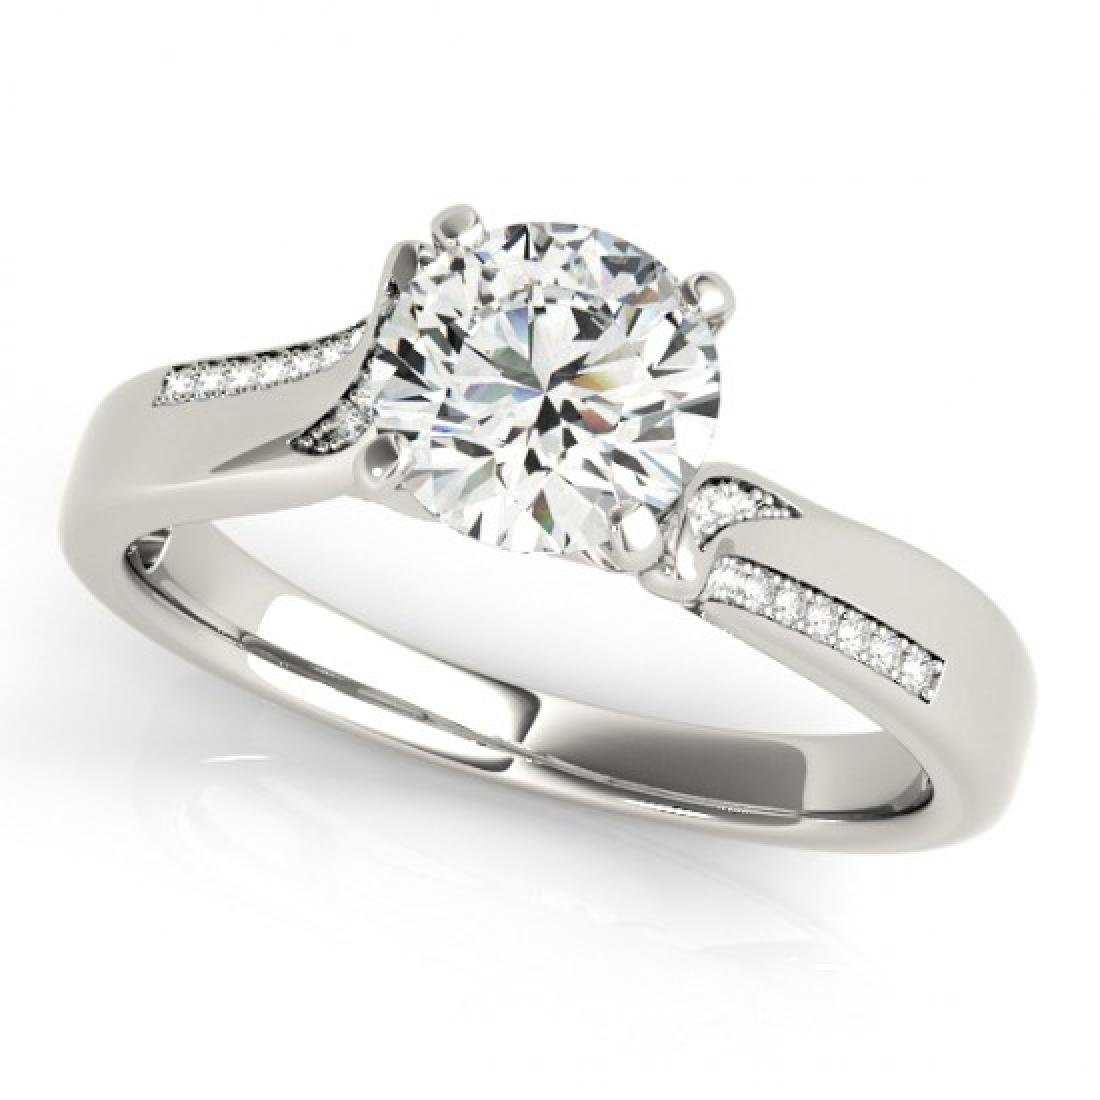 0.71 CTW Certified VS/SI Diamond Solitaire Ring 14K